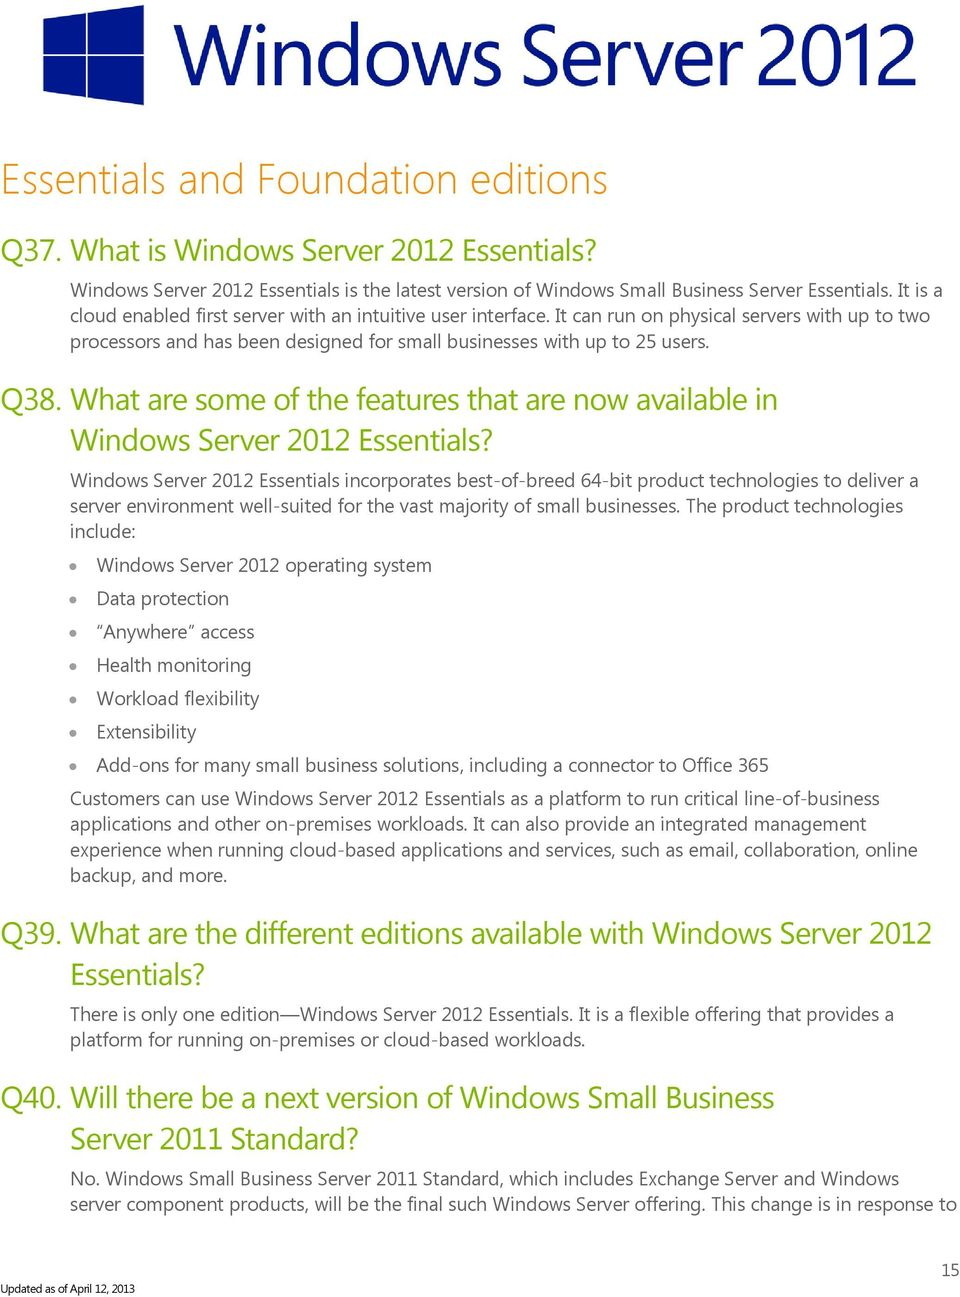 What are some of the features that are now available in Windows Server 2012 Essentials?